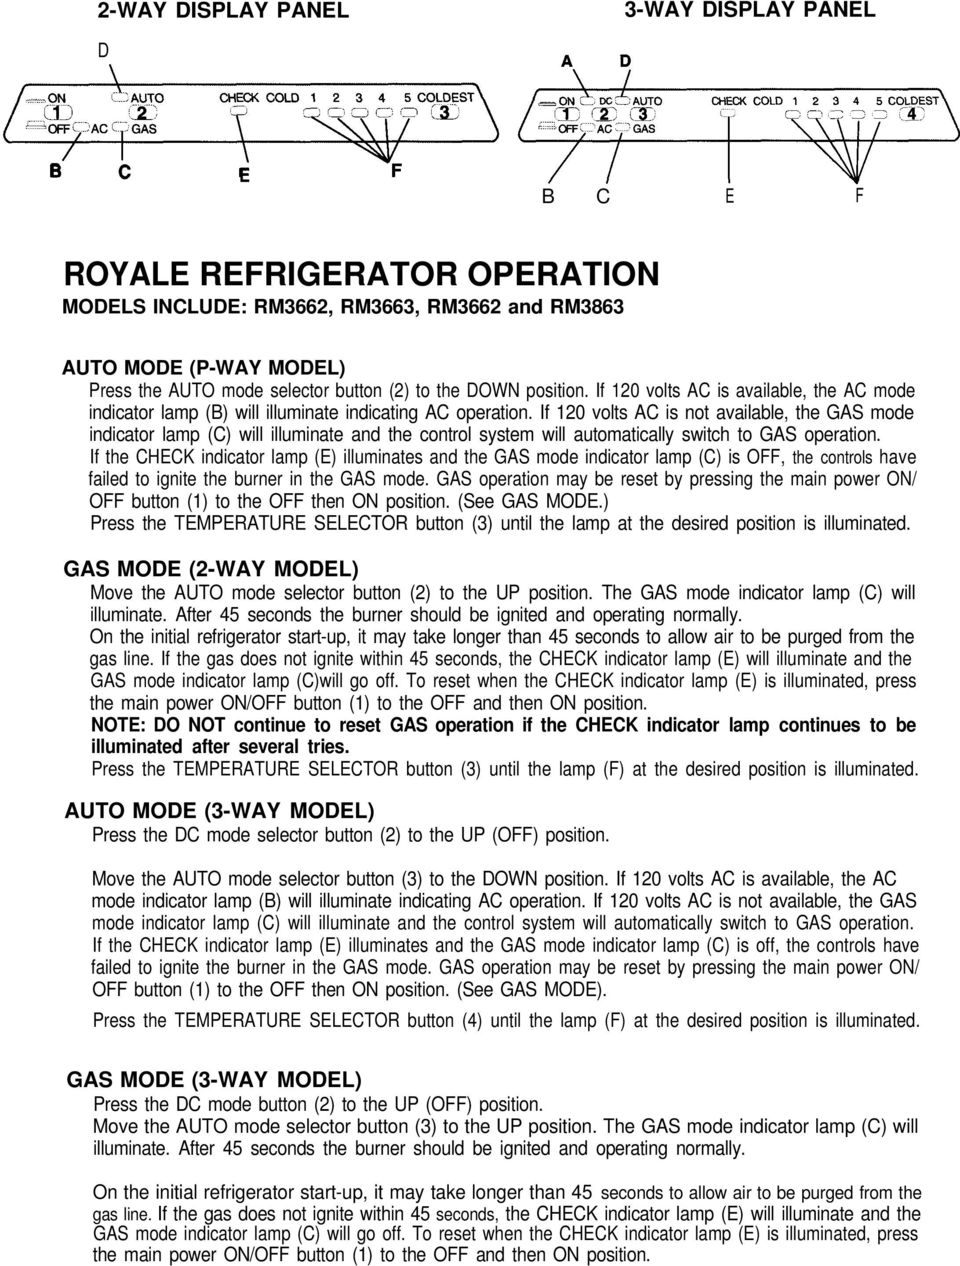 Service Tips Dometic Ames Aes Royale Ellte Refrigerators Models 3 Way Switch Operation If 120 Volts Ac Is Not Available The Gas Mode Indicator Lamp C